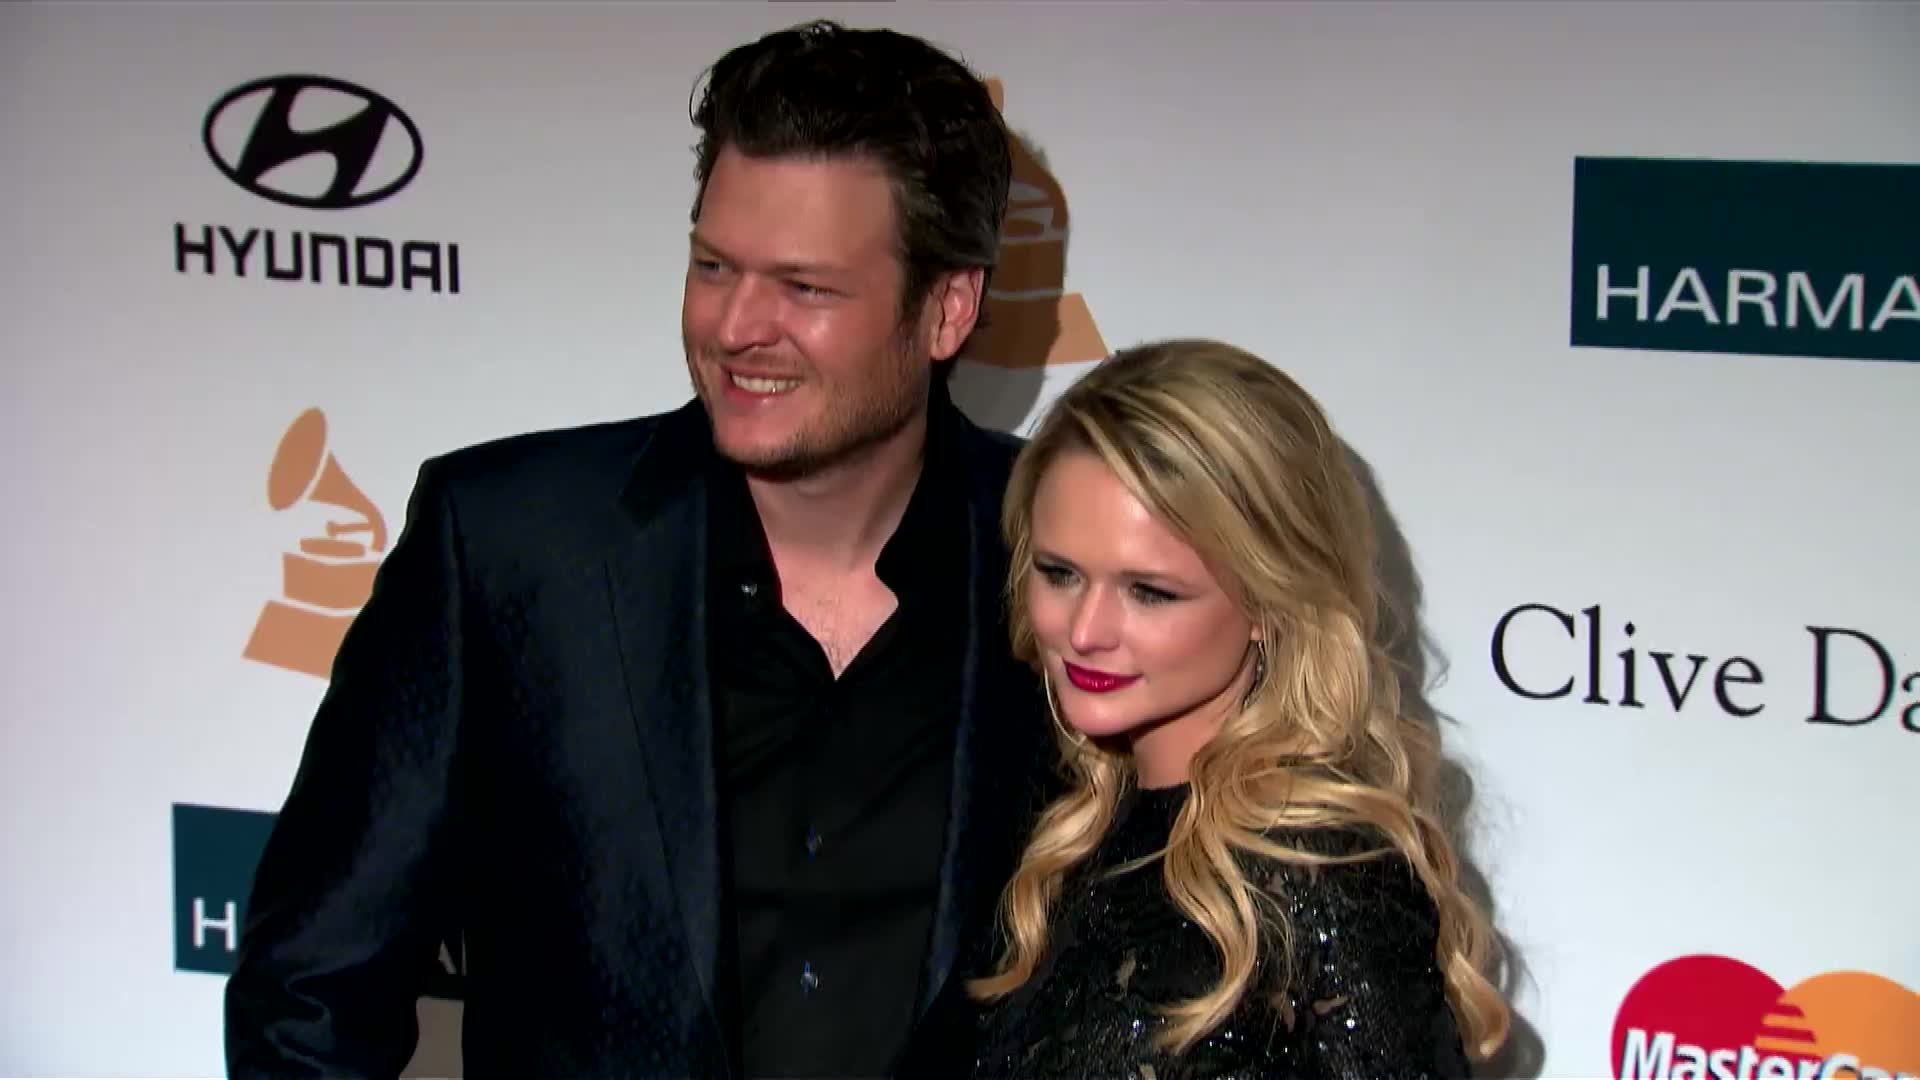 Blake Shelton and Miranda Lambert Want to Stay Friends